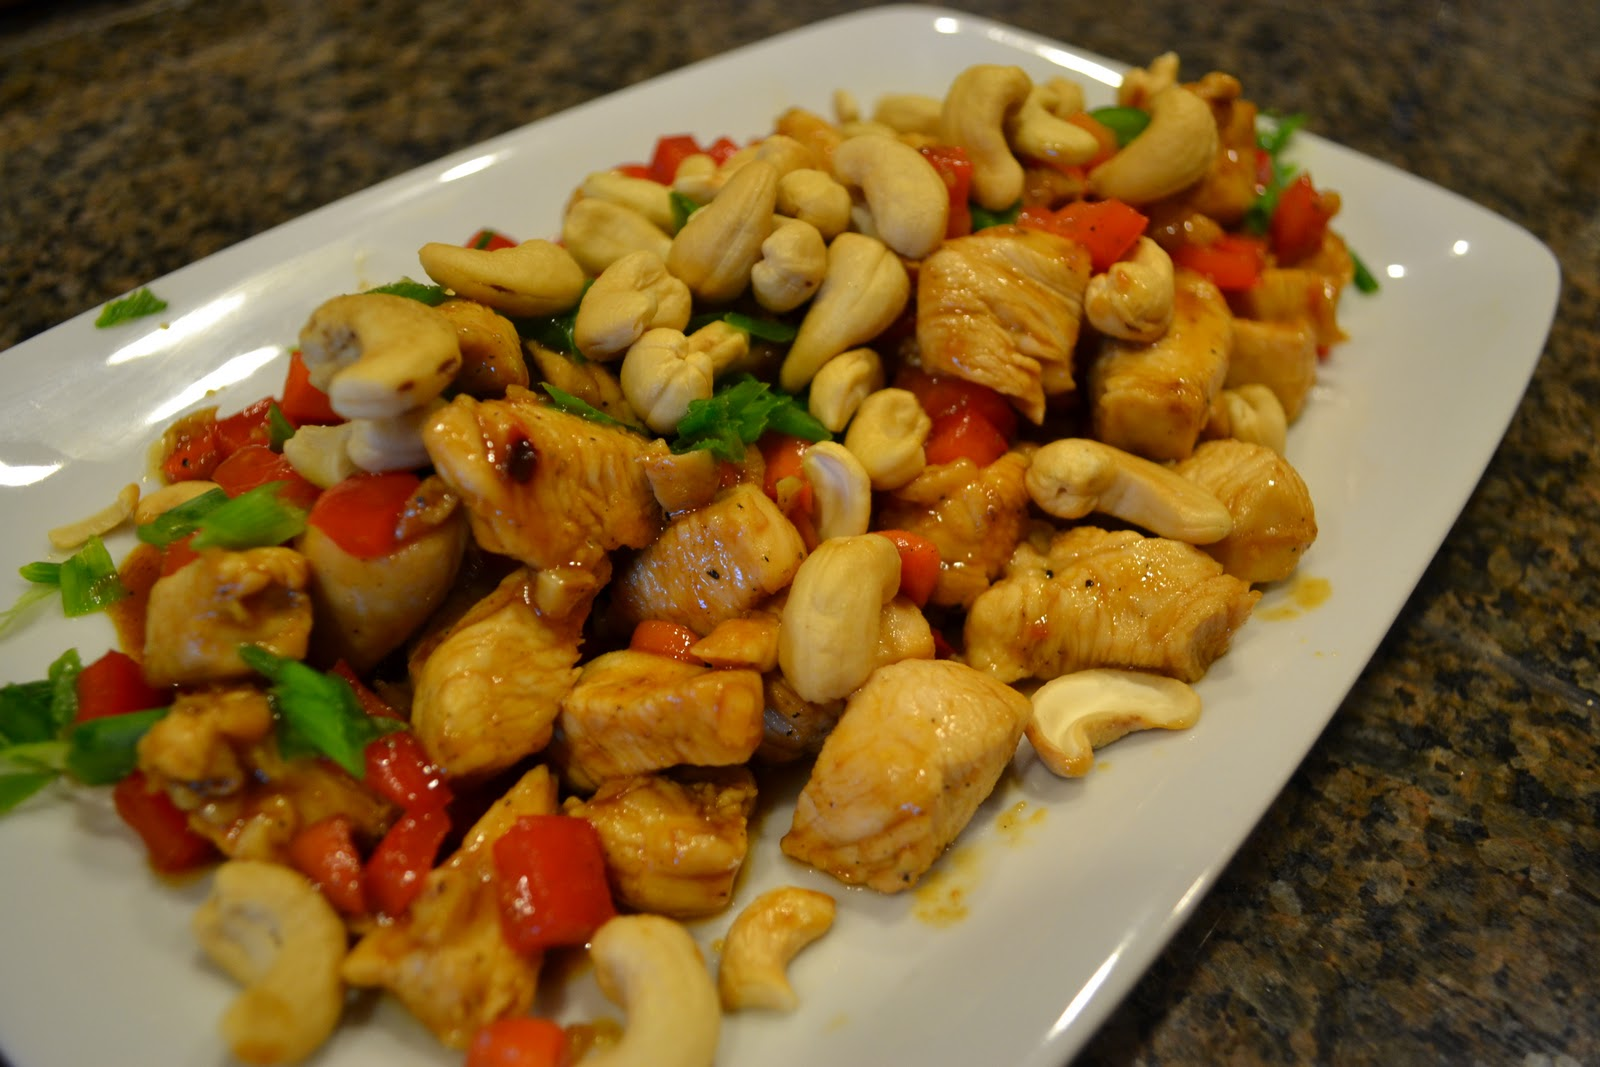 https://www.everythingrachaelray.com/2012/01/its-keeper-cashew-chicken.html